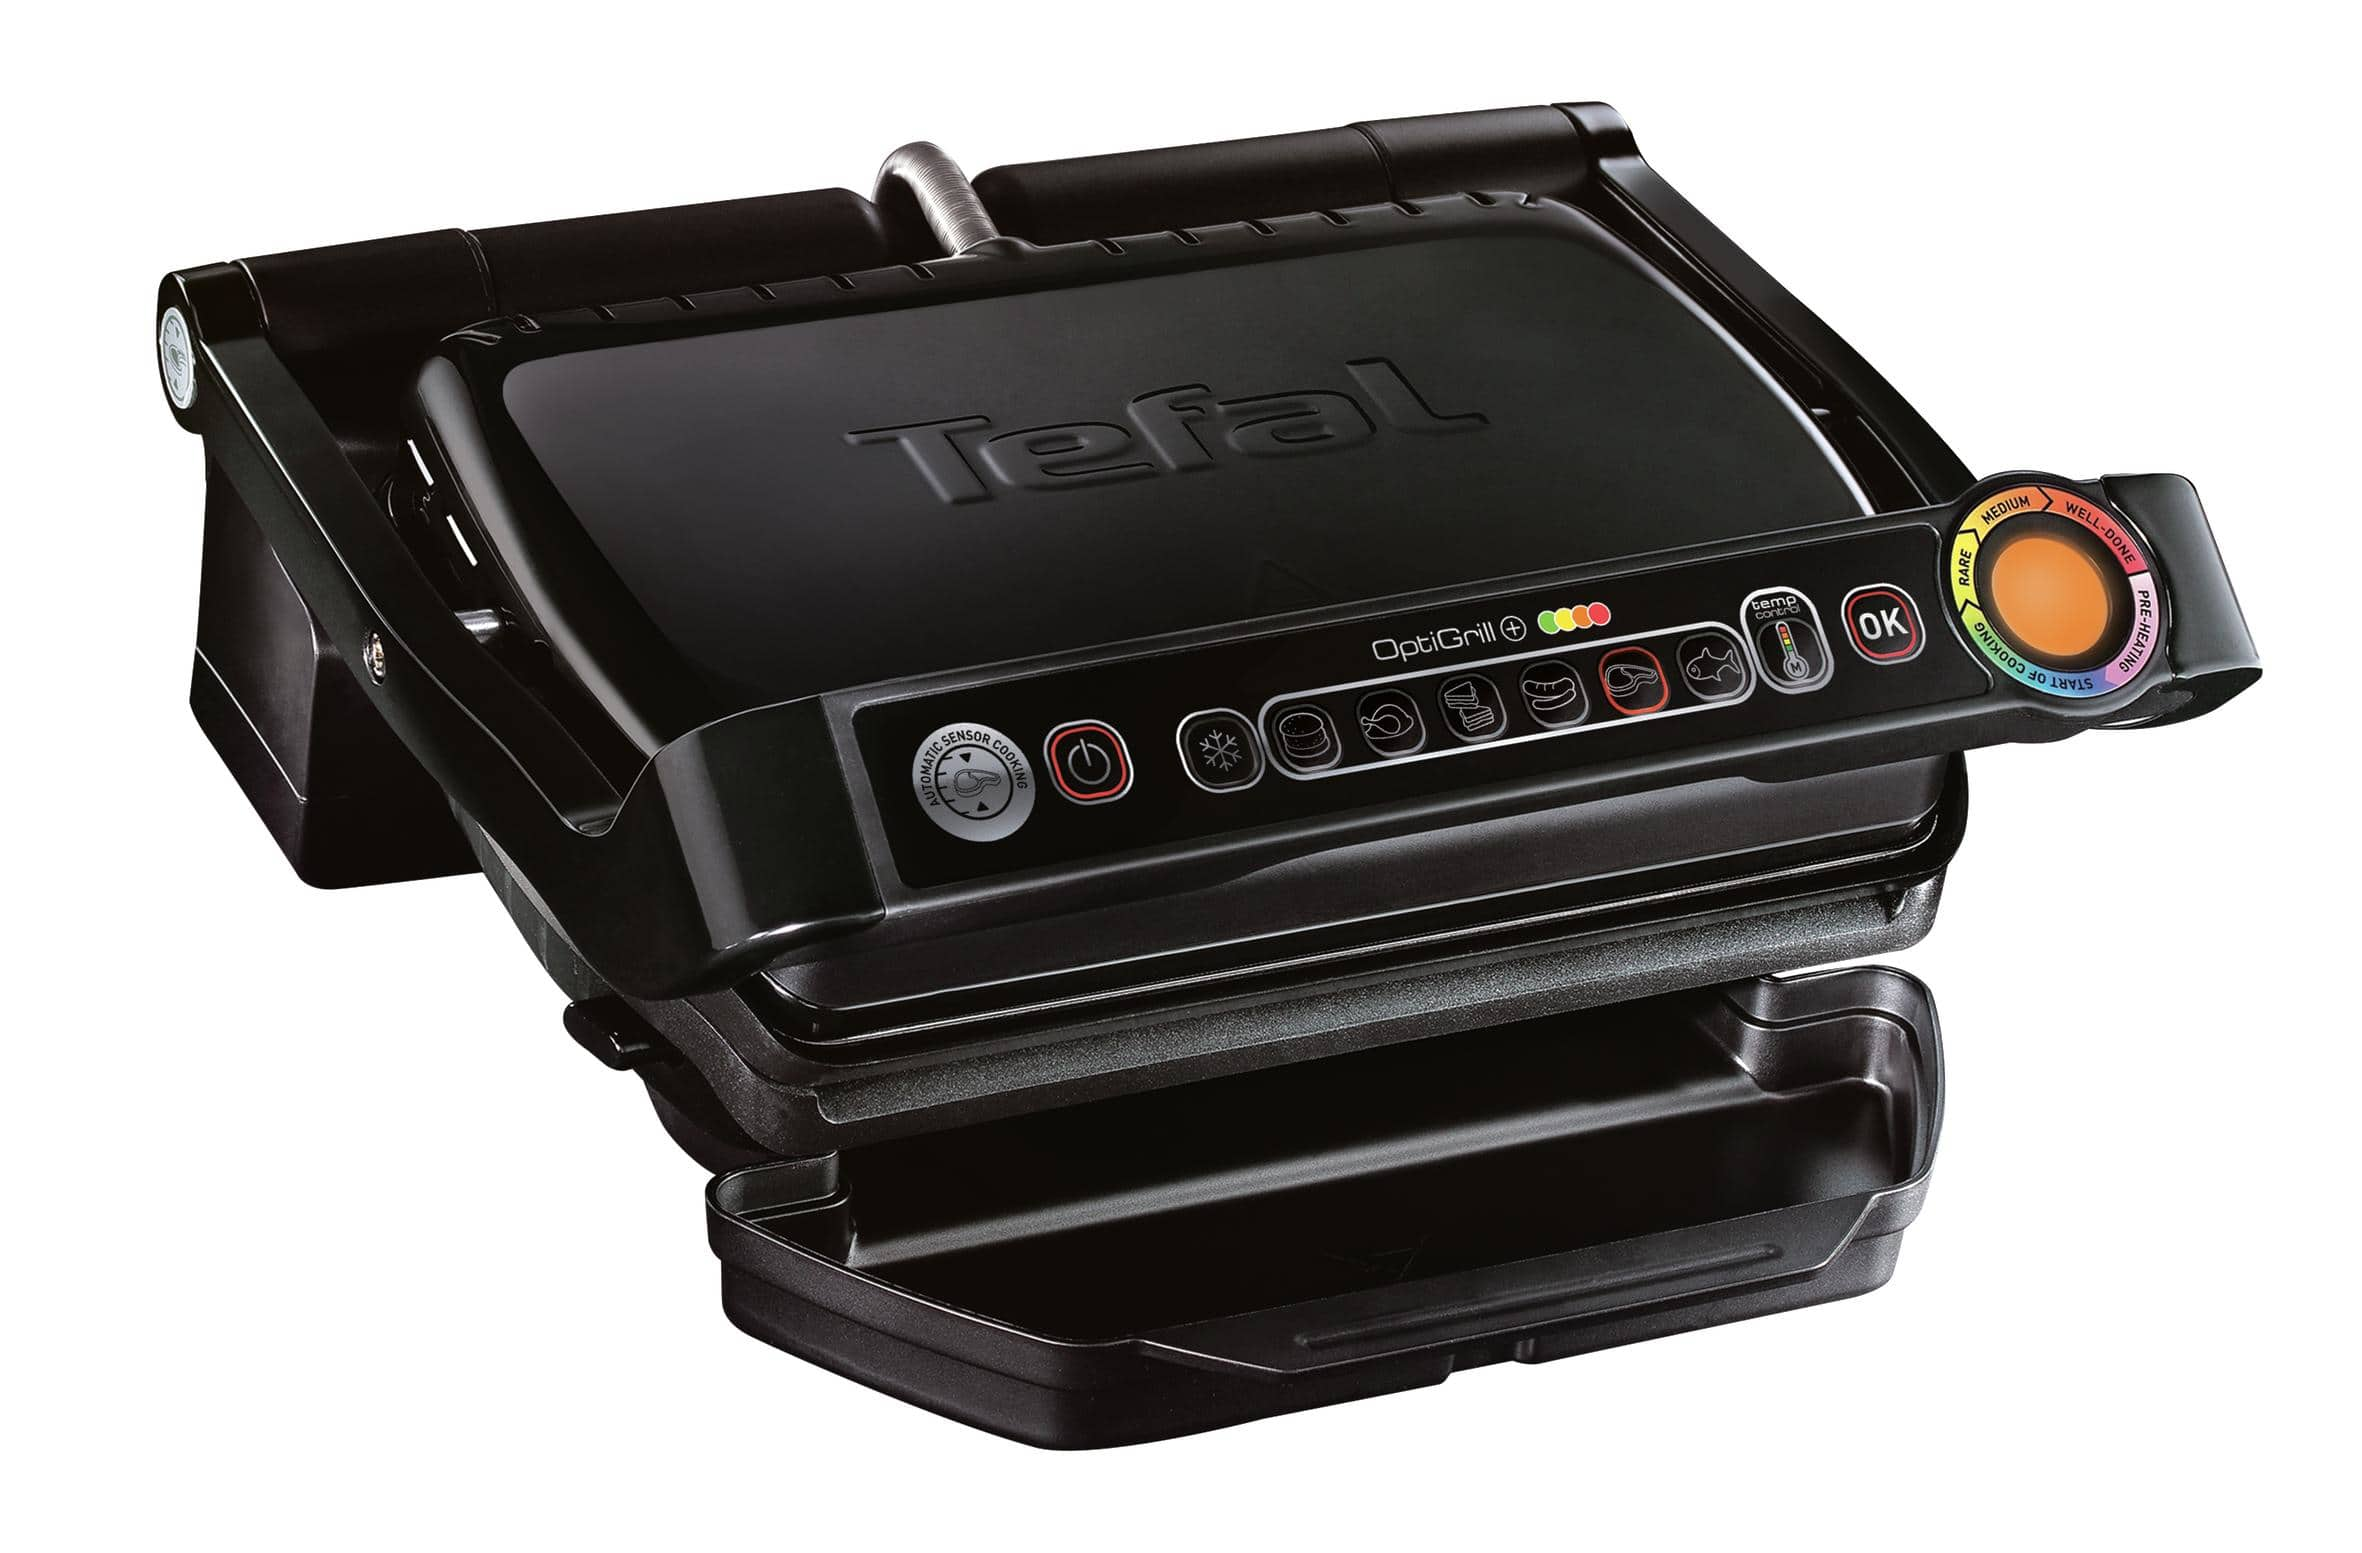 Tefal GC 7148 Optigrill+ Snacking & Baking Kontaktgrill 2000W Auto-Off für 111,00 Euro